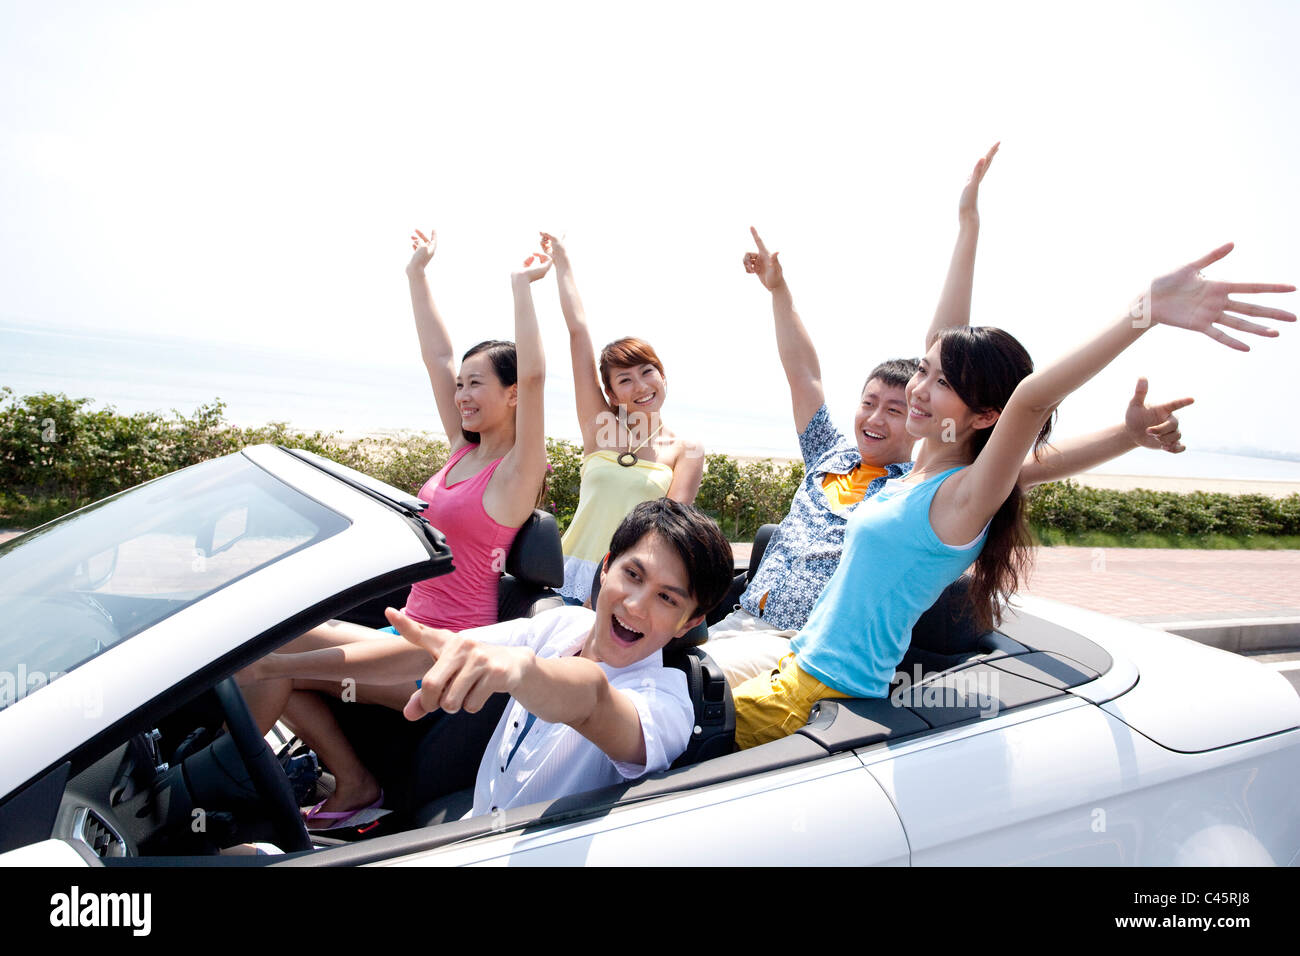 Friends Having Fun in a Convertible Stock Photo, Royalty ...